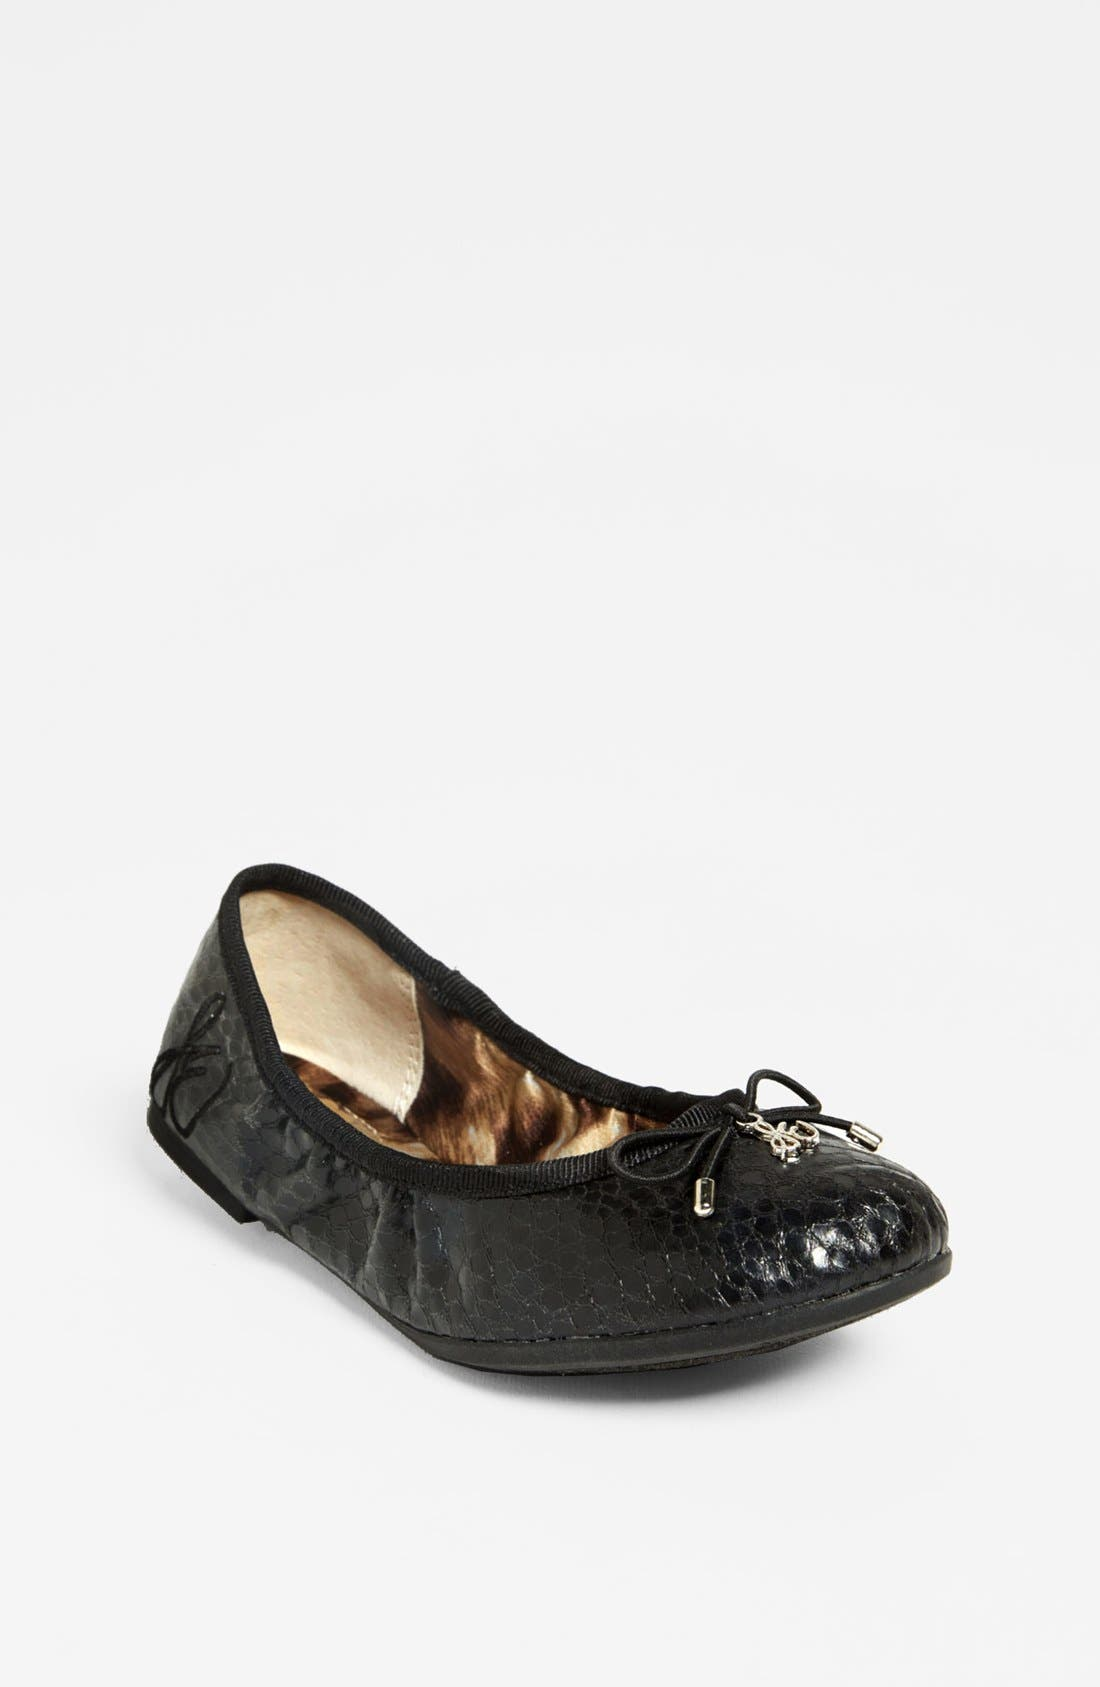 Main Image - Sam Edelman 'Fiona' Ballet Flat (Toddler, Little Kid & Big Kid)